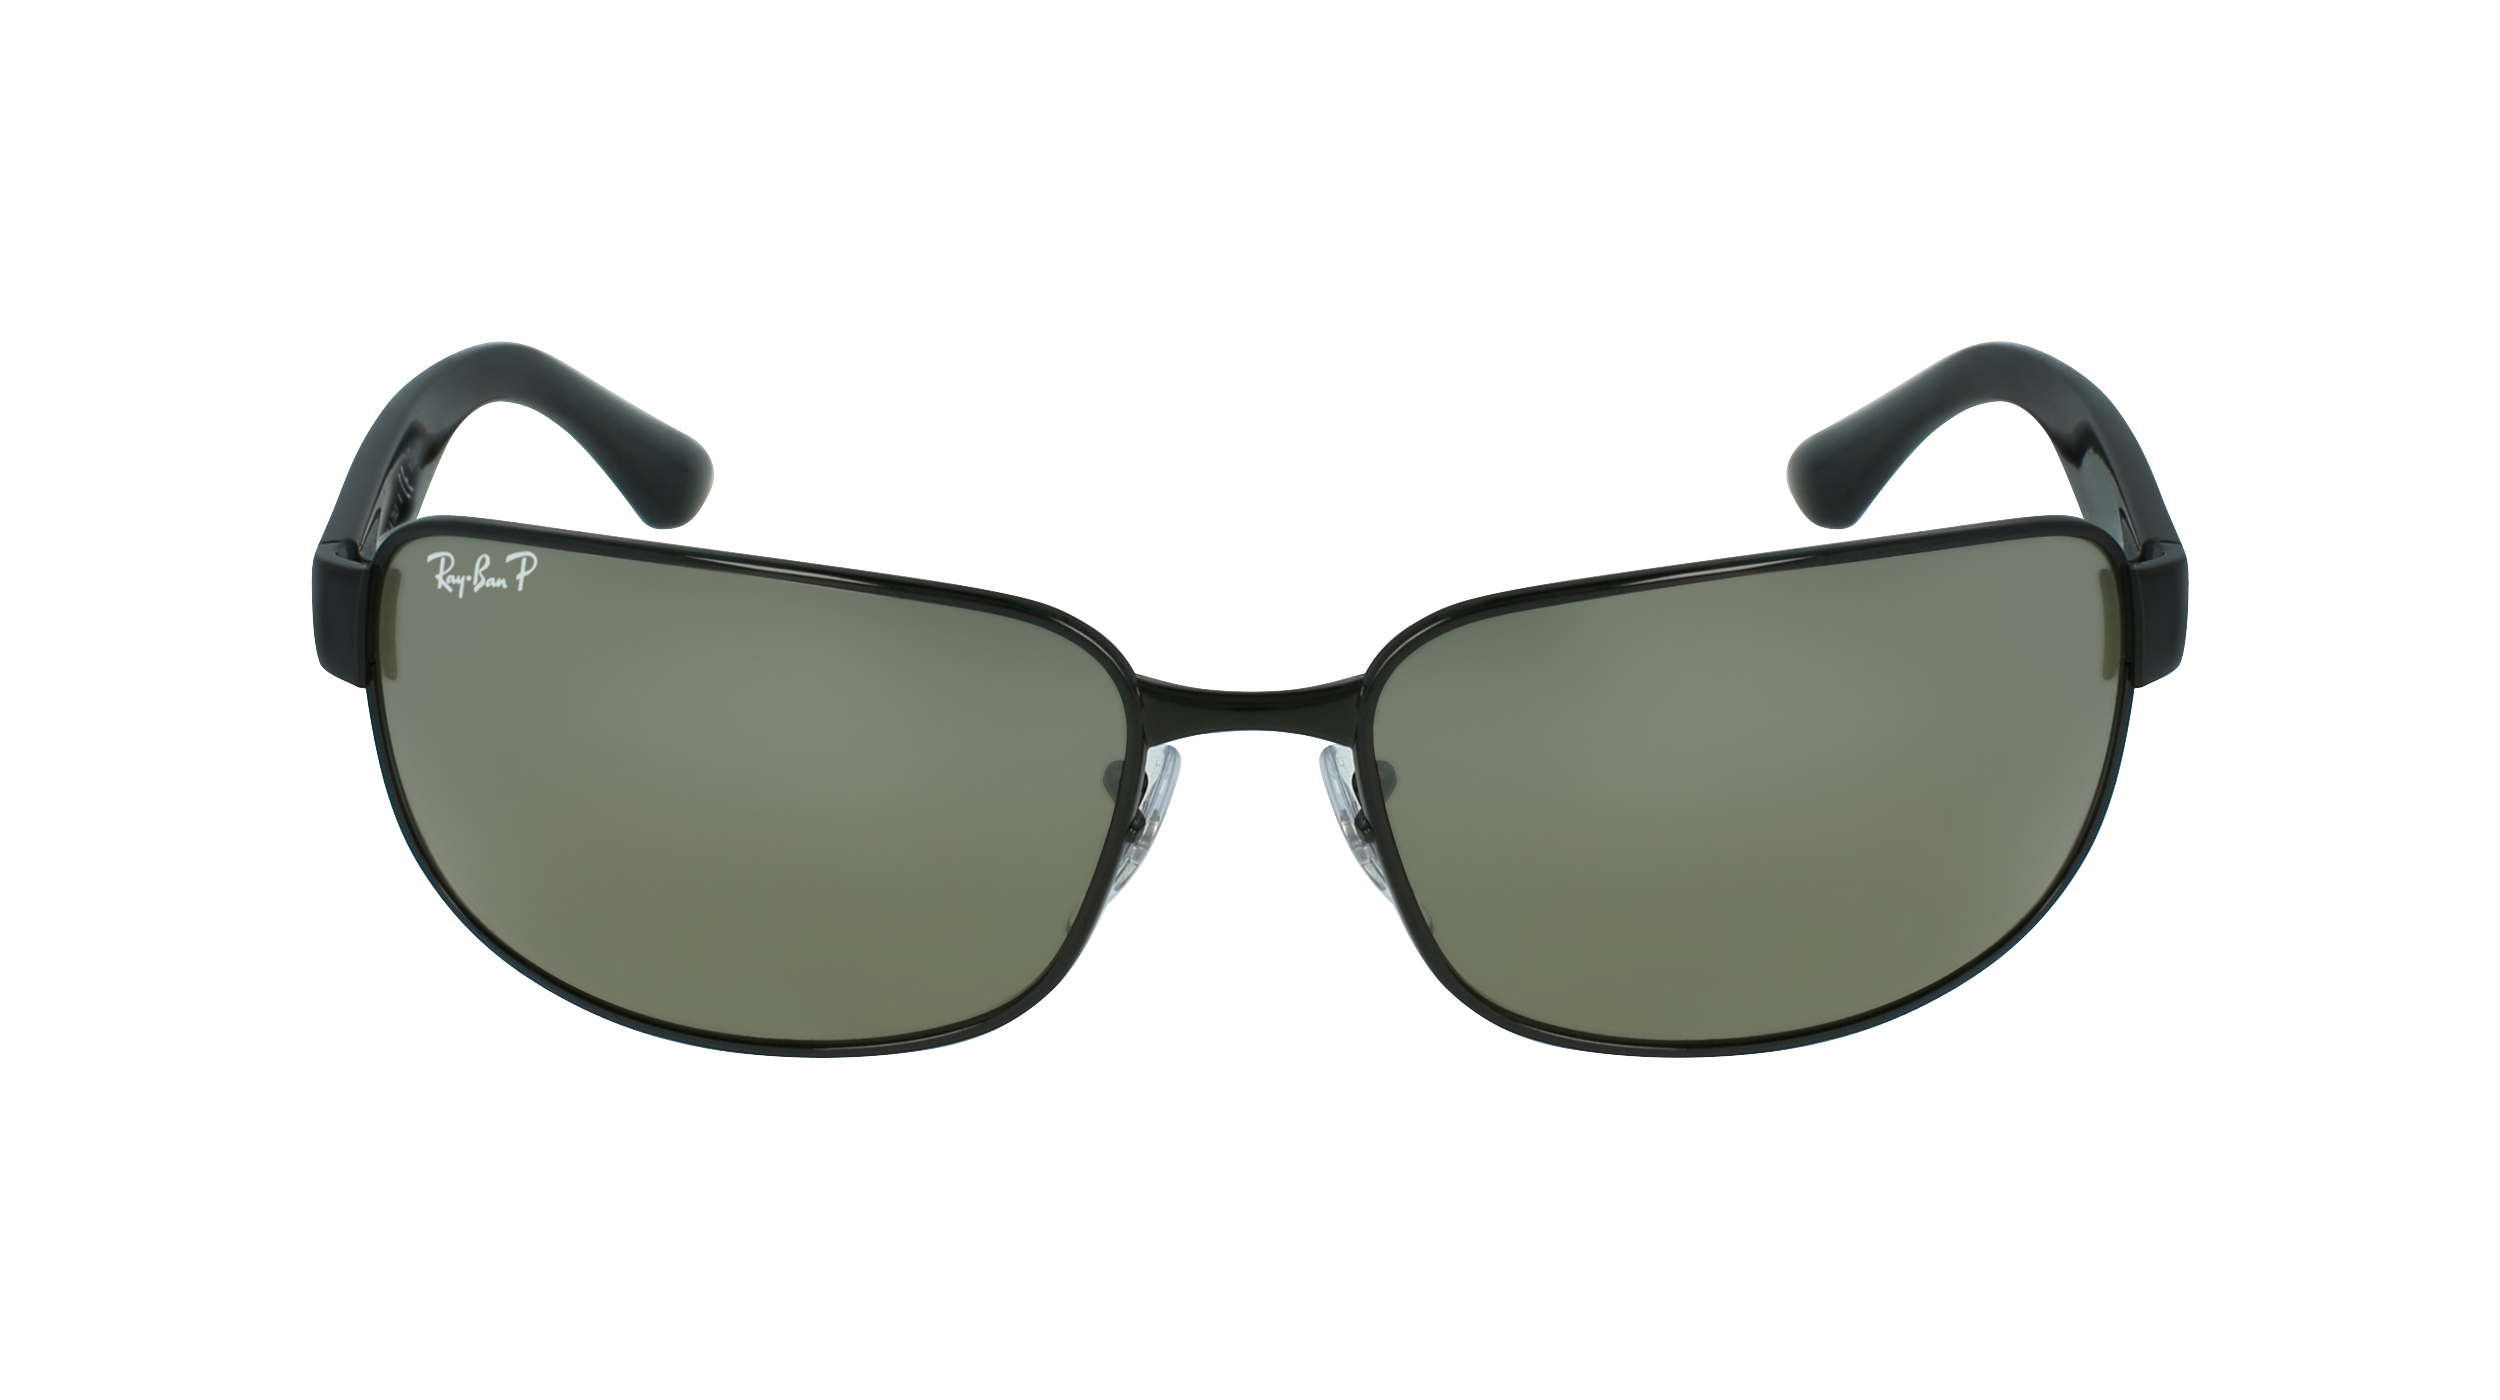 optic2000-lunettes-soleil-rayban